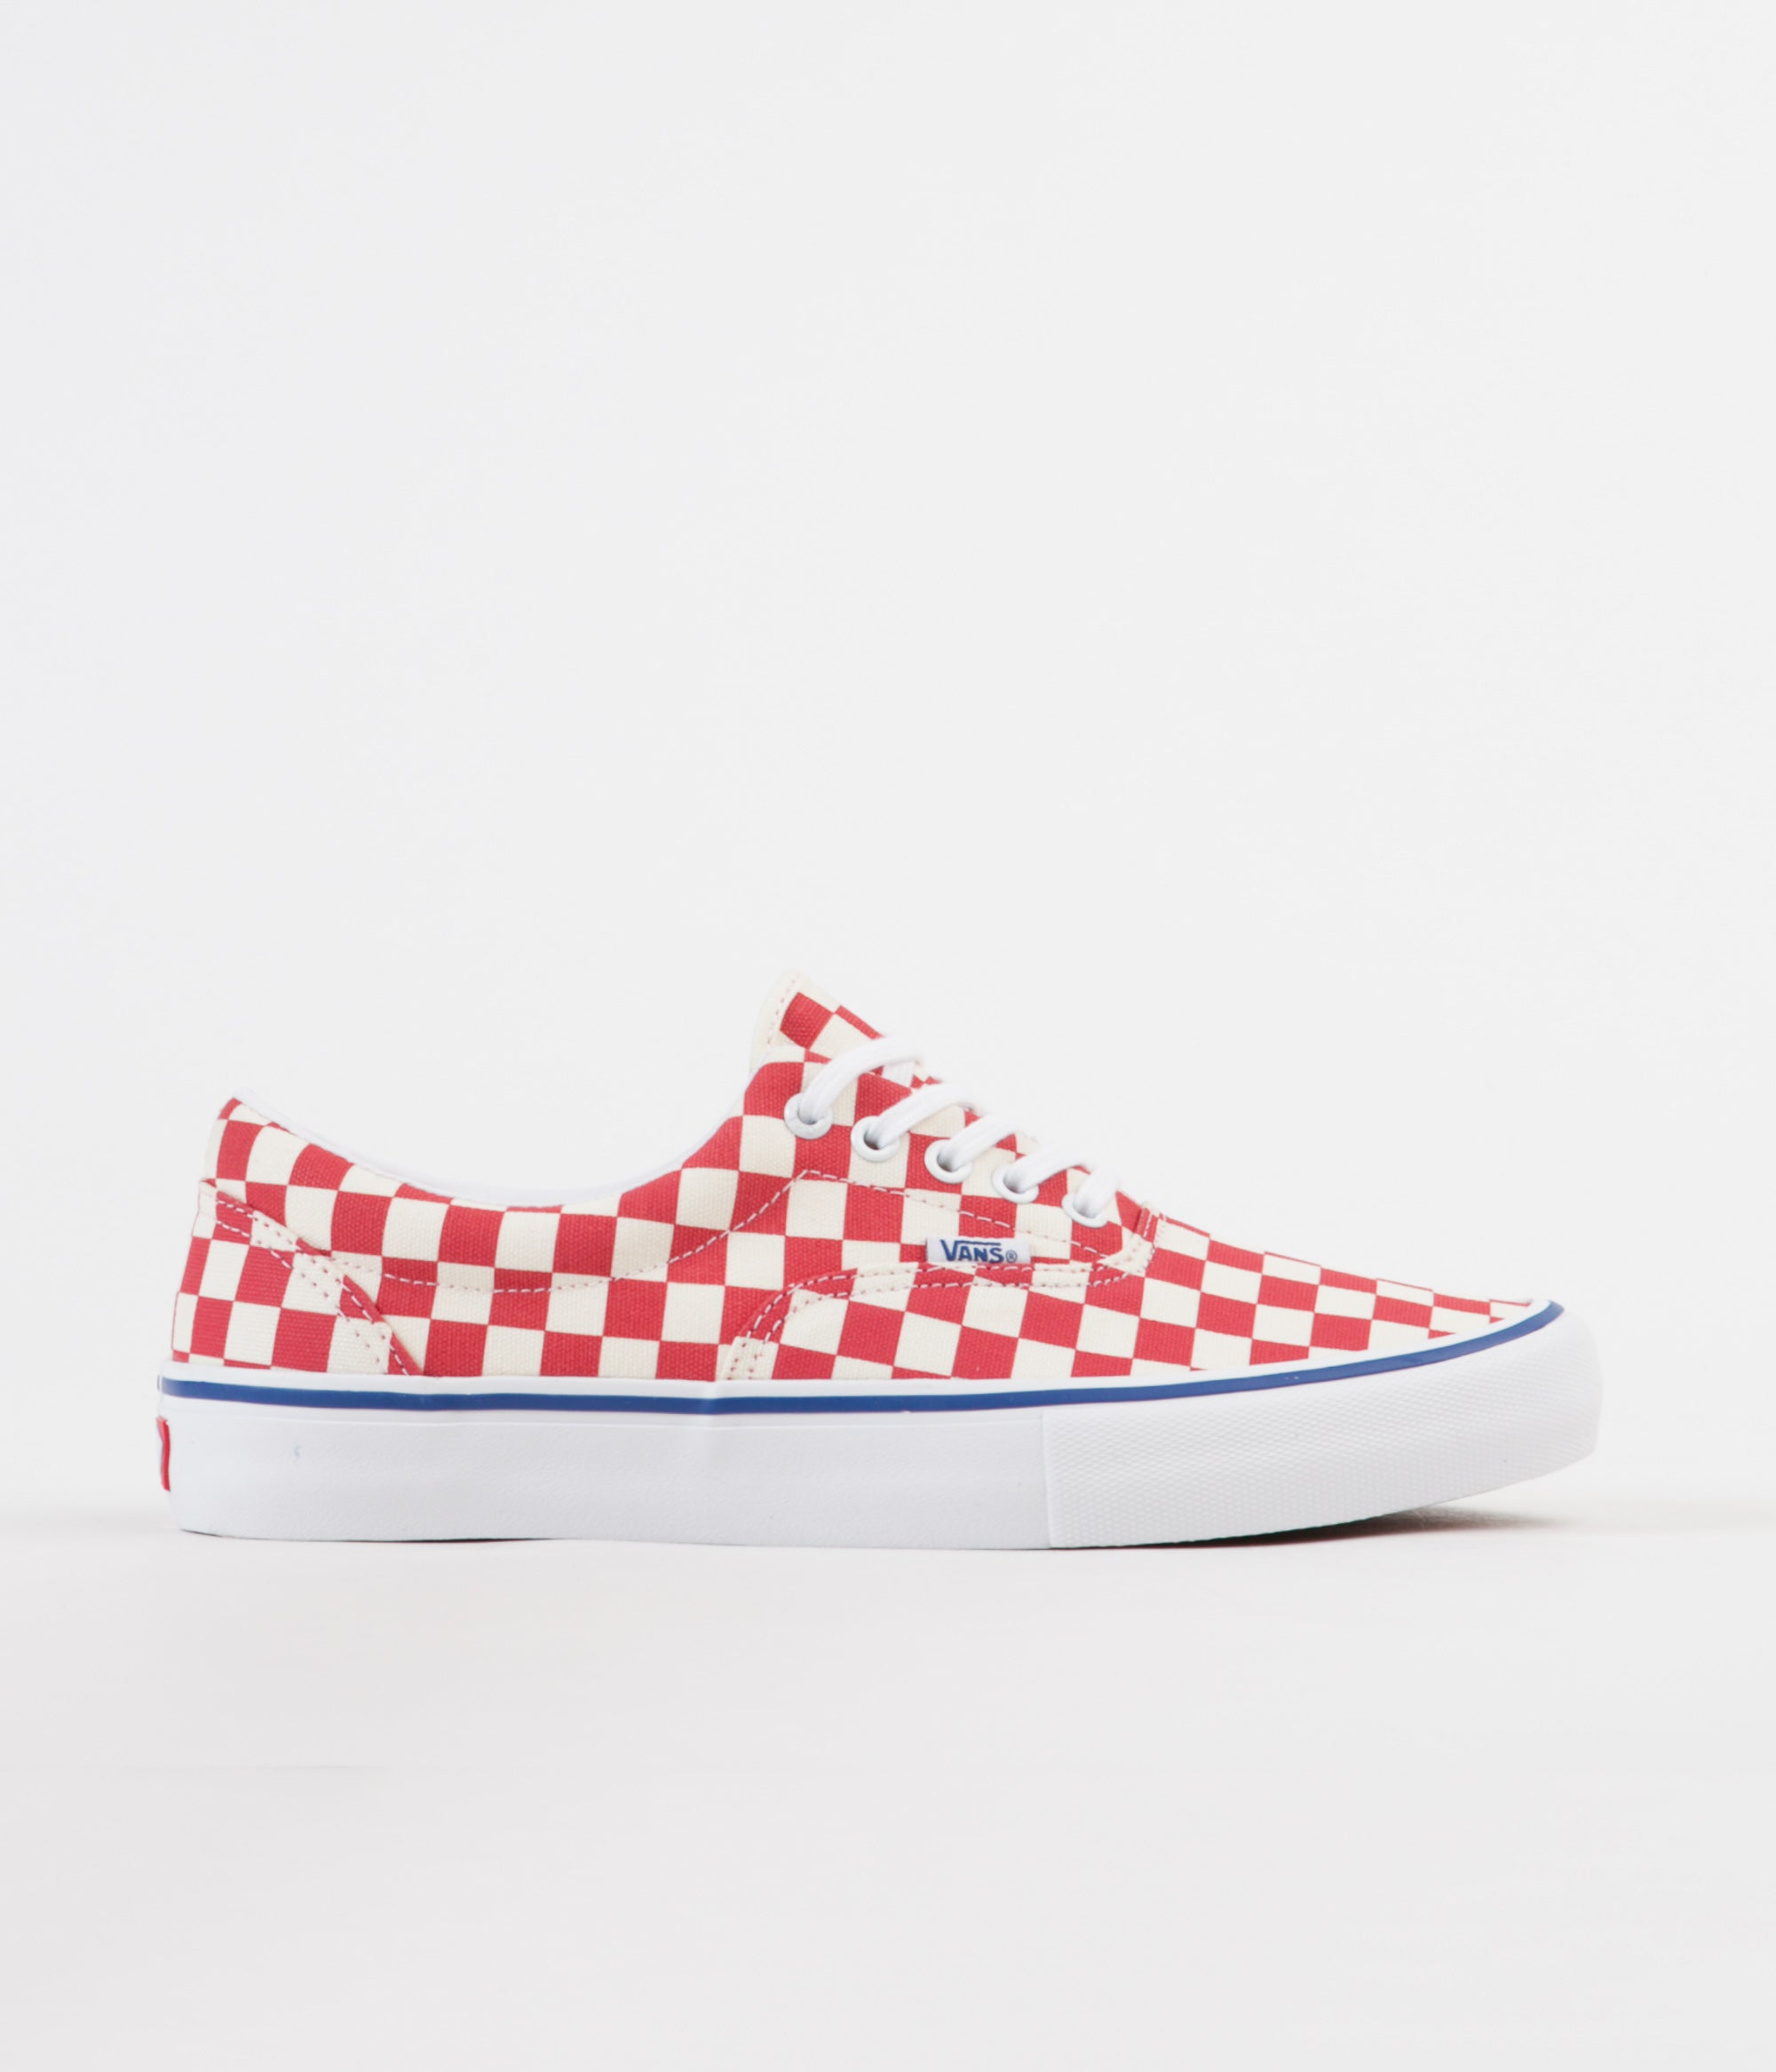 Vans Era Pro Checkerboard Shoes - Rococco Red   Classic White  f6fe17a10